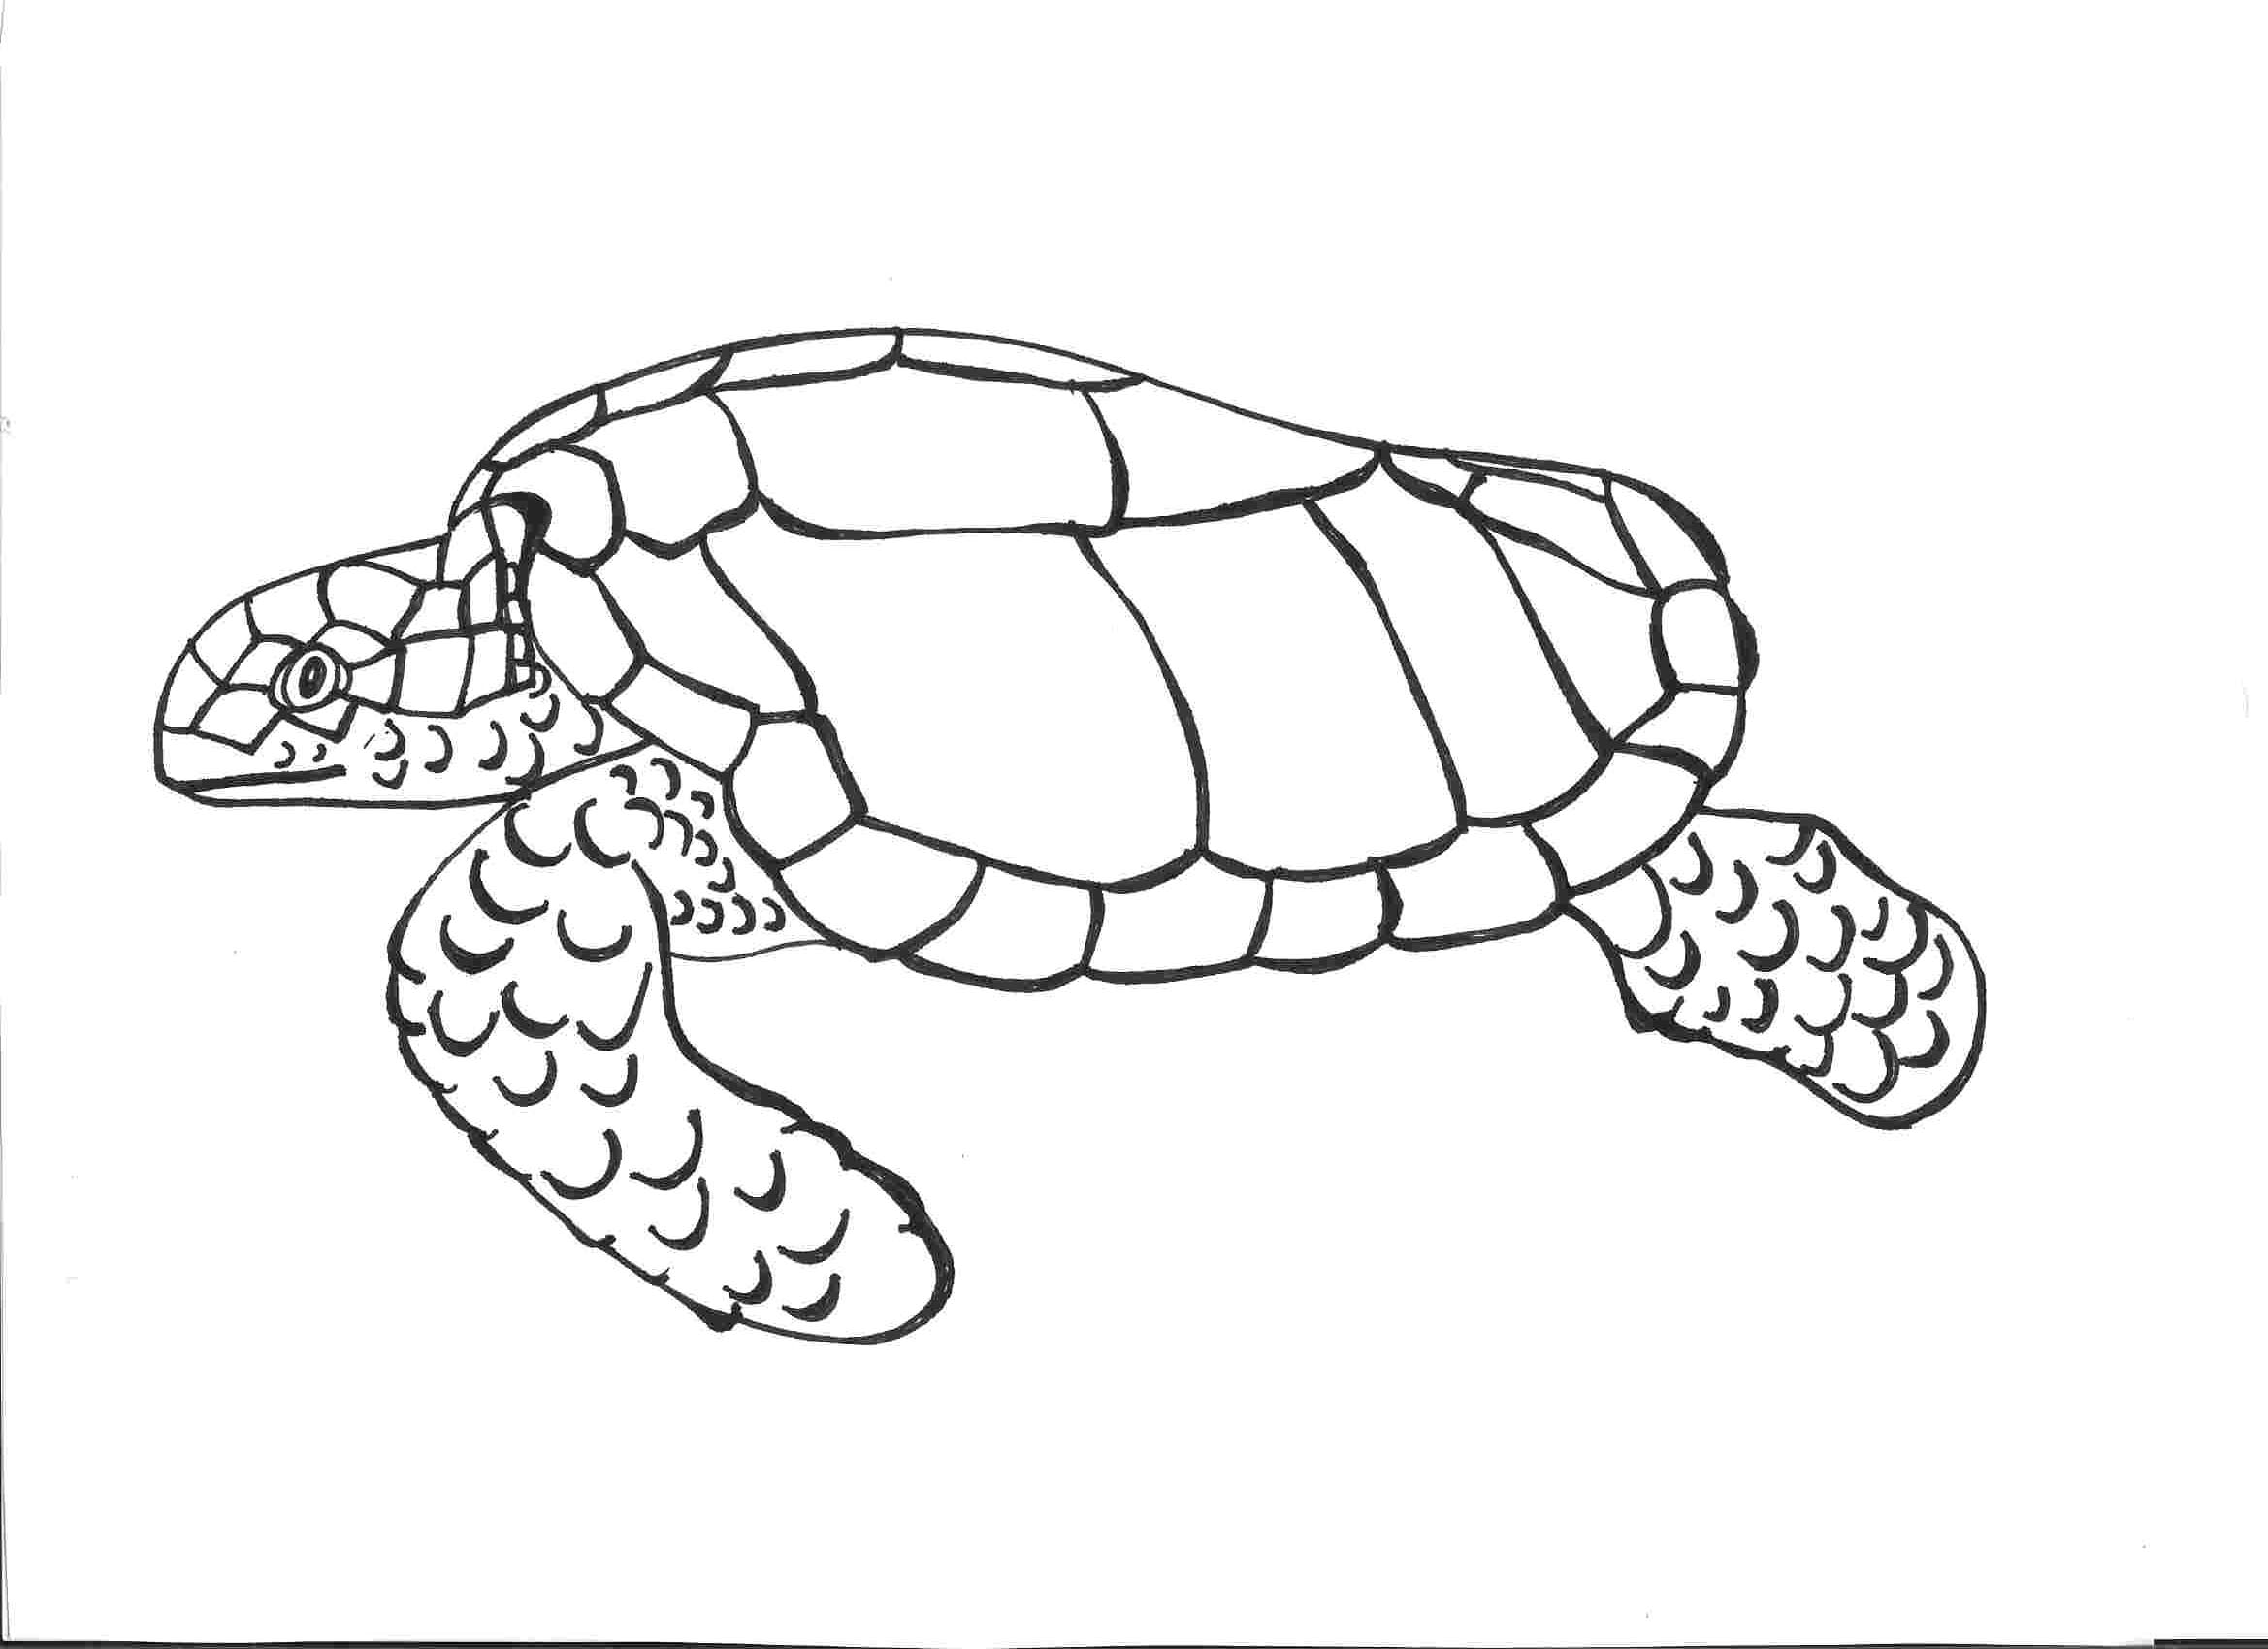 Drawn sea turtle line drawing Coloring Pages Coloring Free Pages